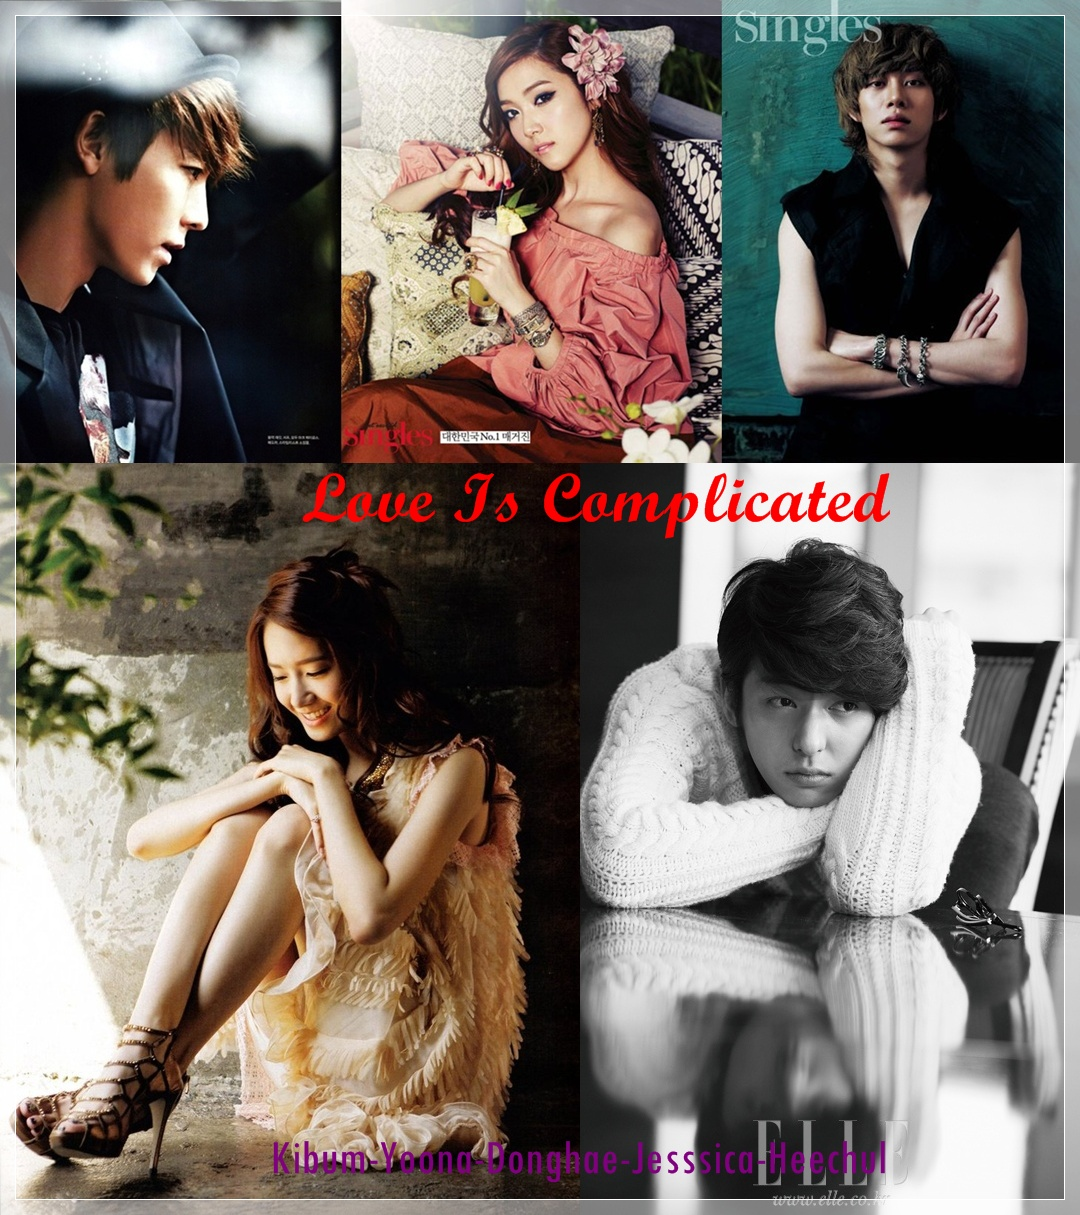 yoona and donghae dating 2012 chevy